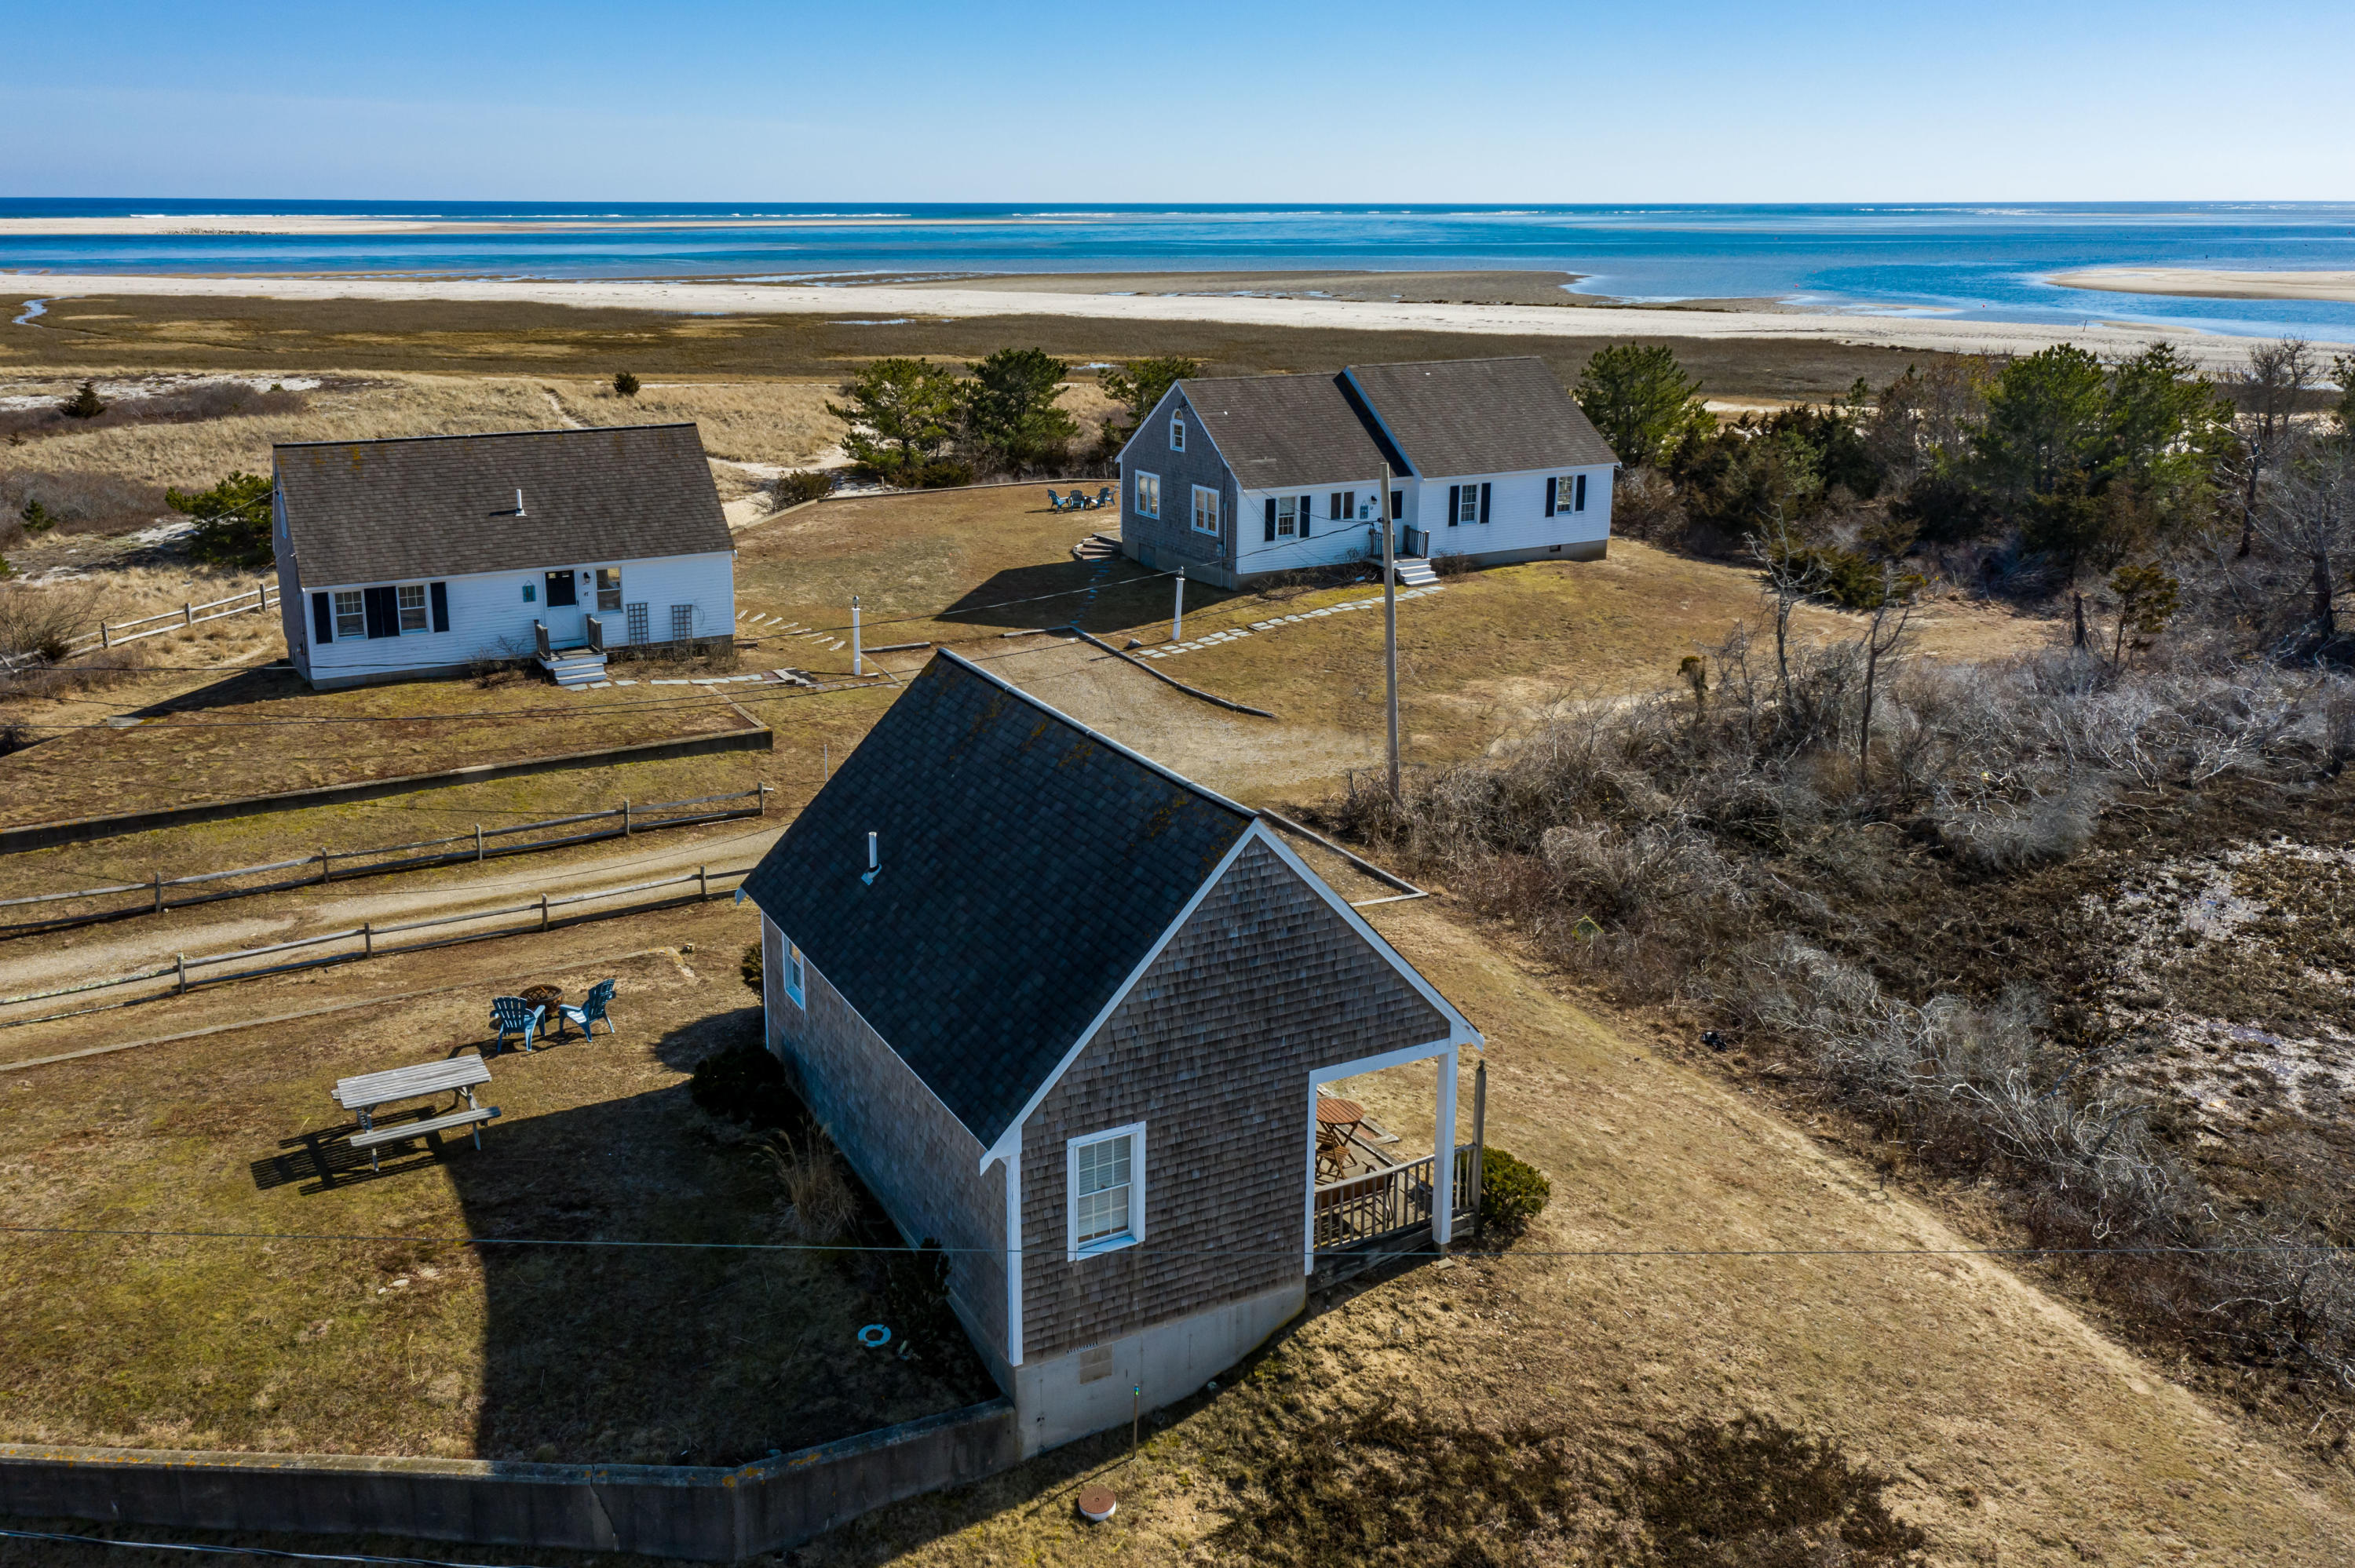 46, 47, 53 Little Beach Road, Chatham MA, 02633 details